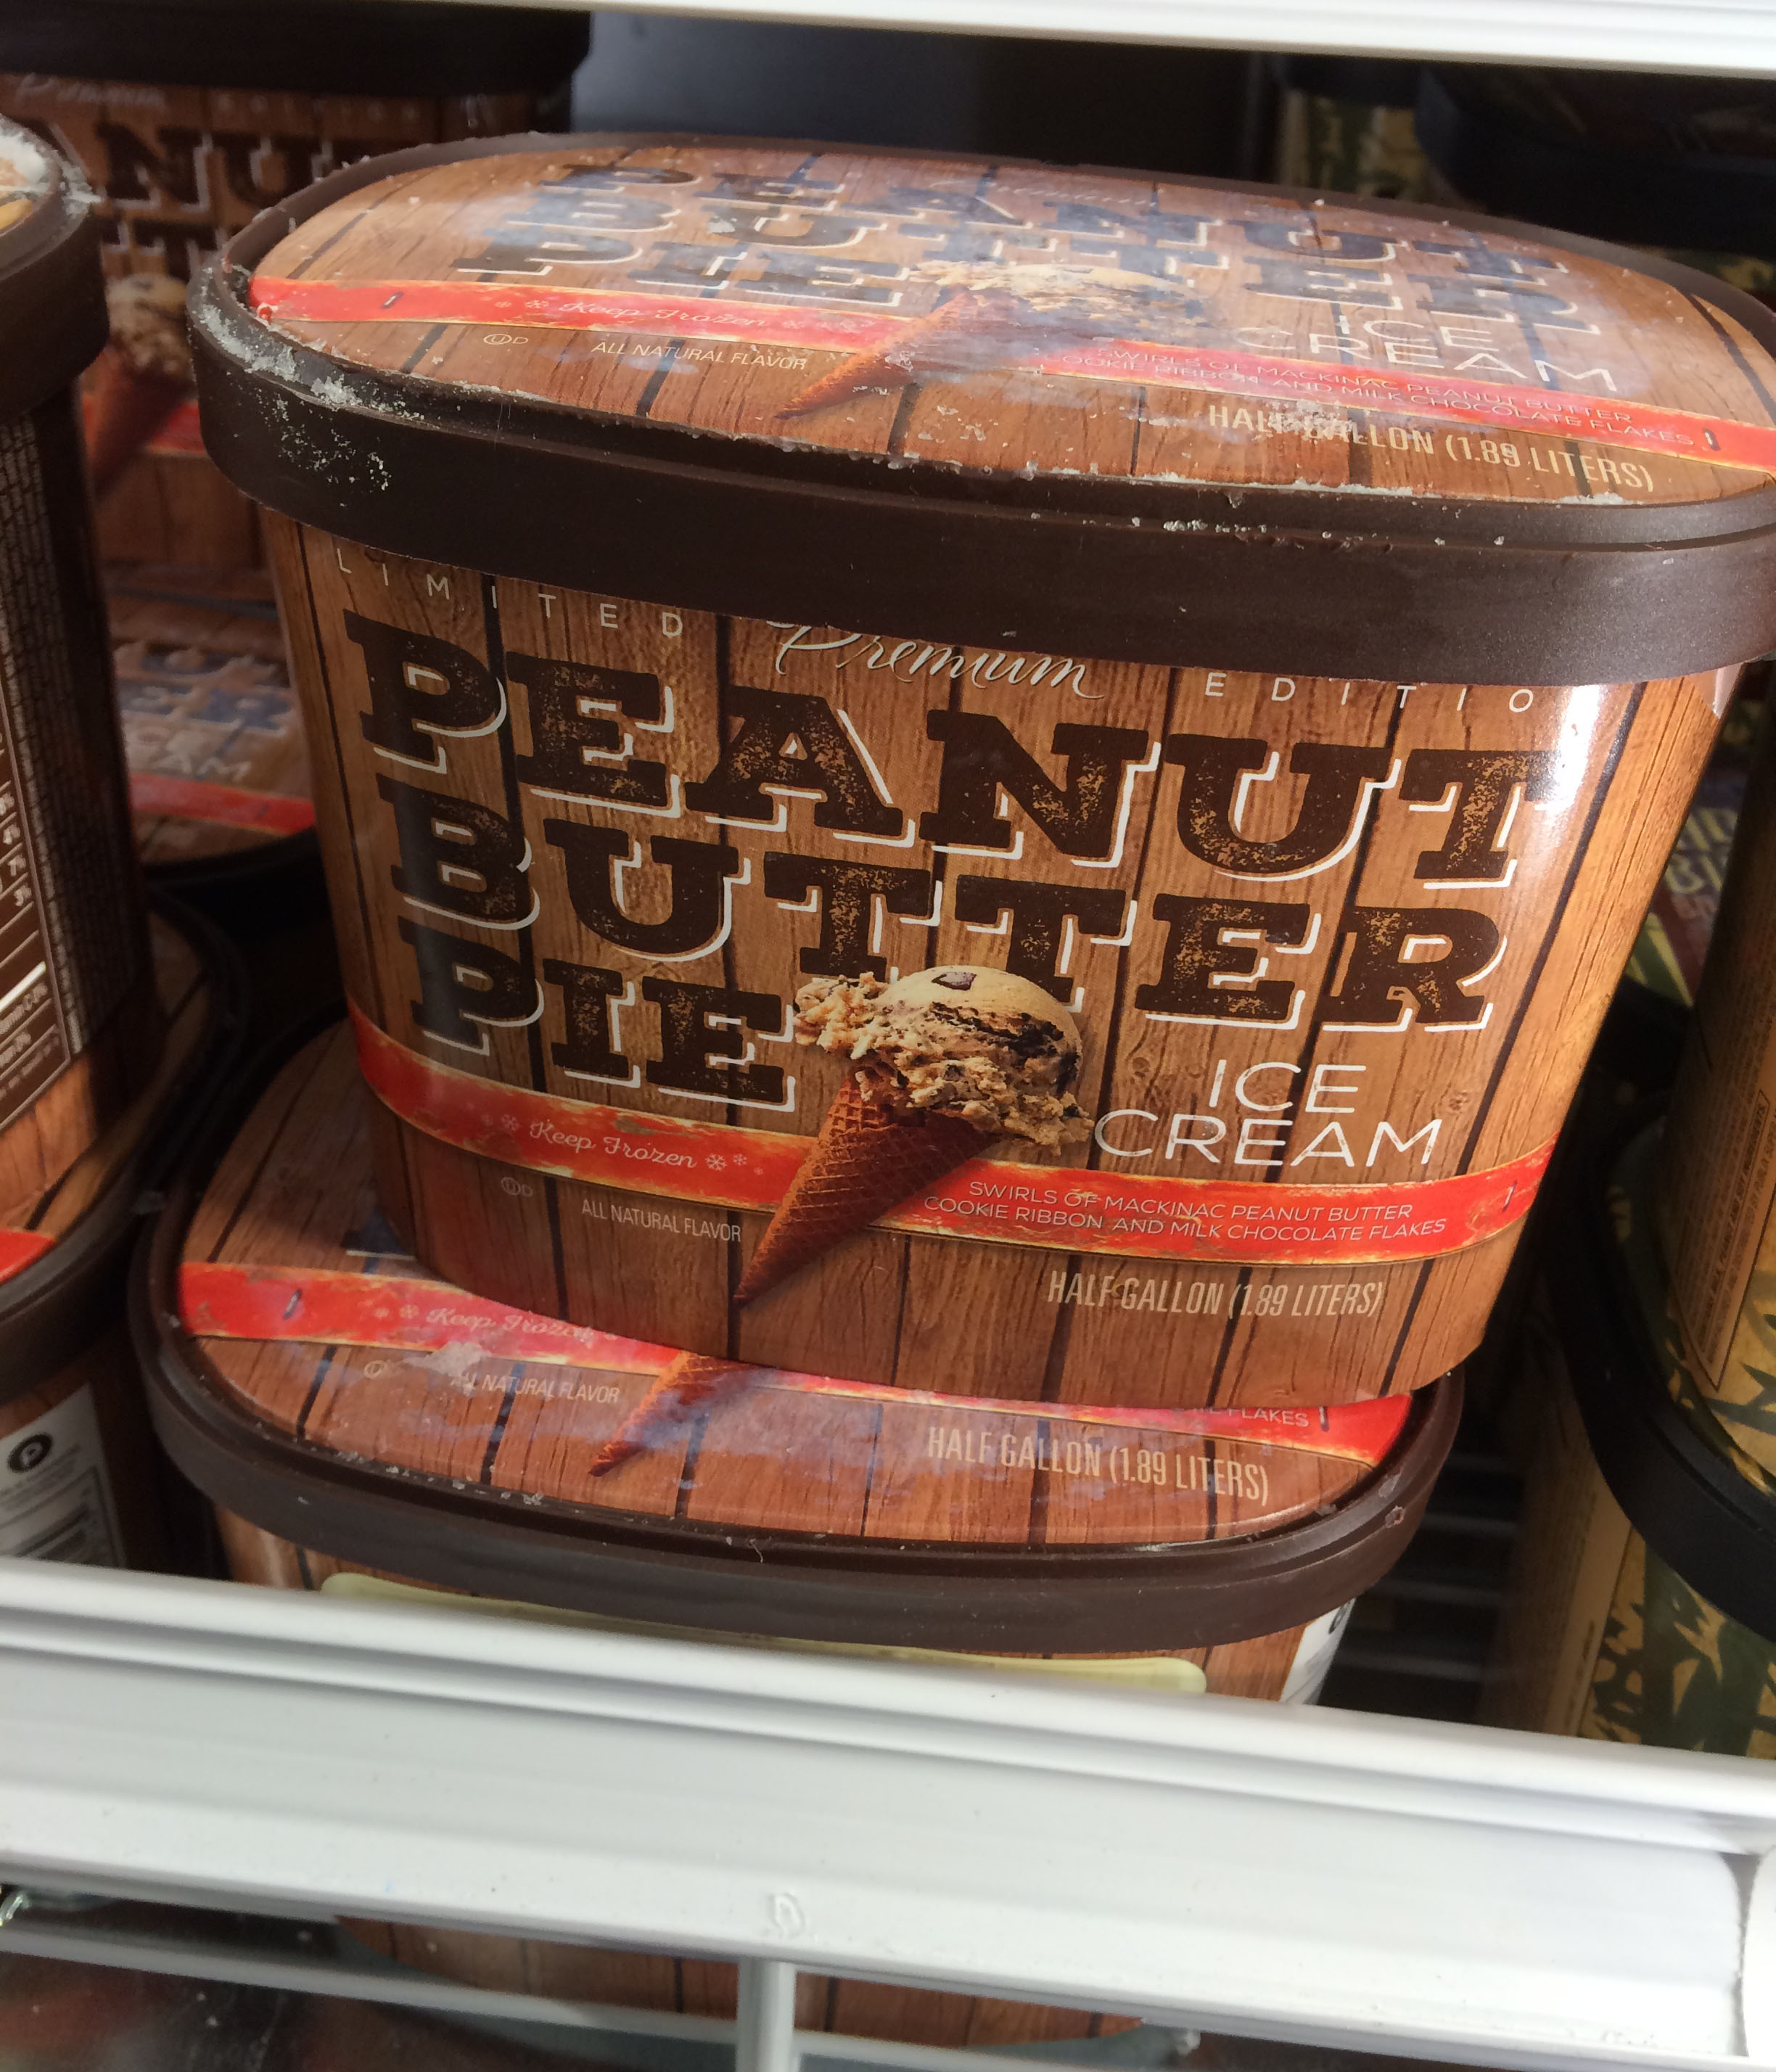 I took this photo of the peanut butter pie ice cream when we visited Publix this past Saturday.